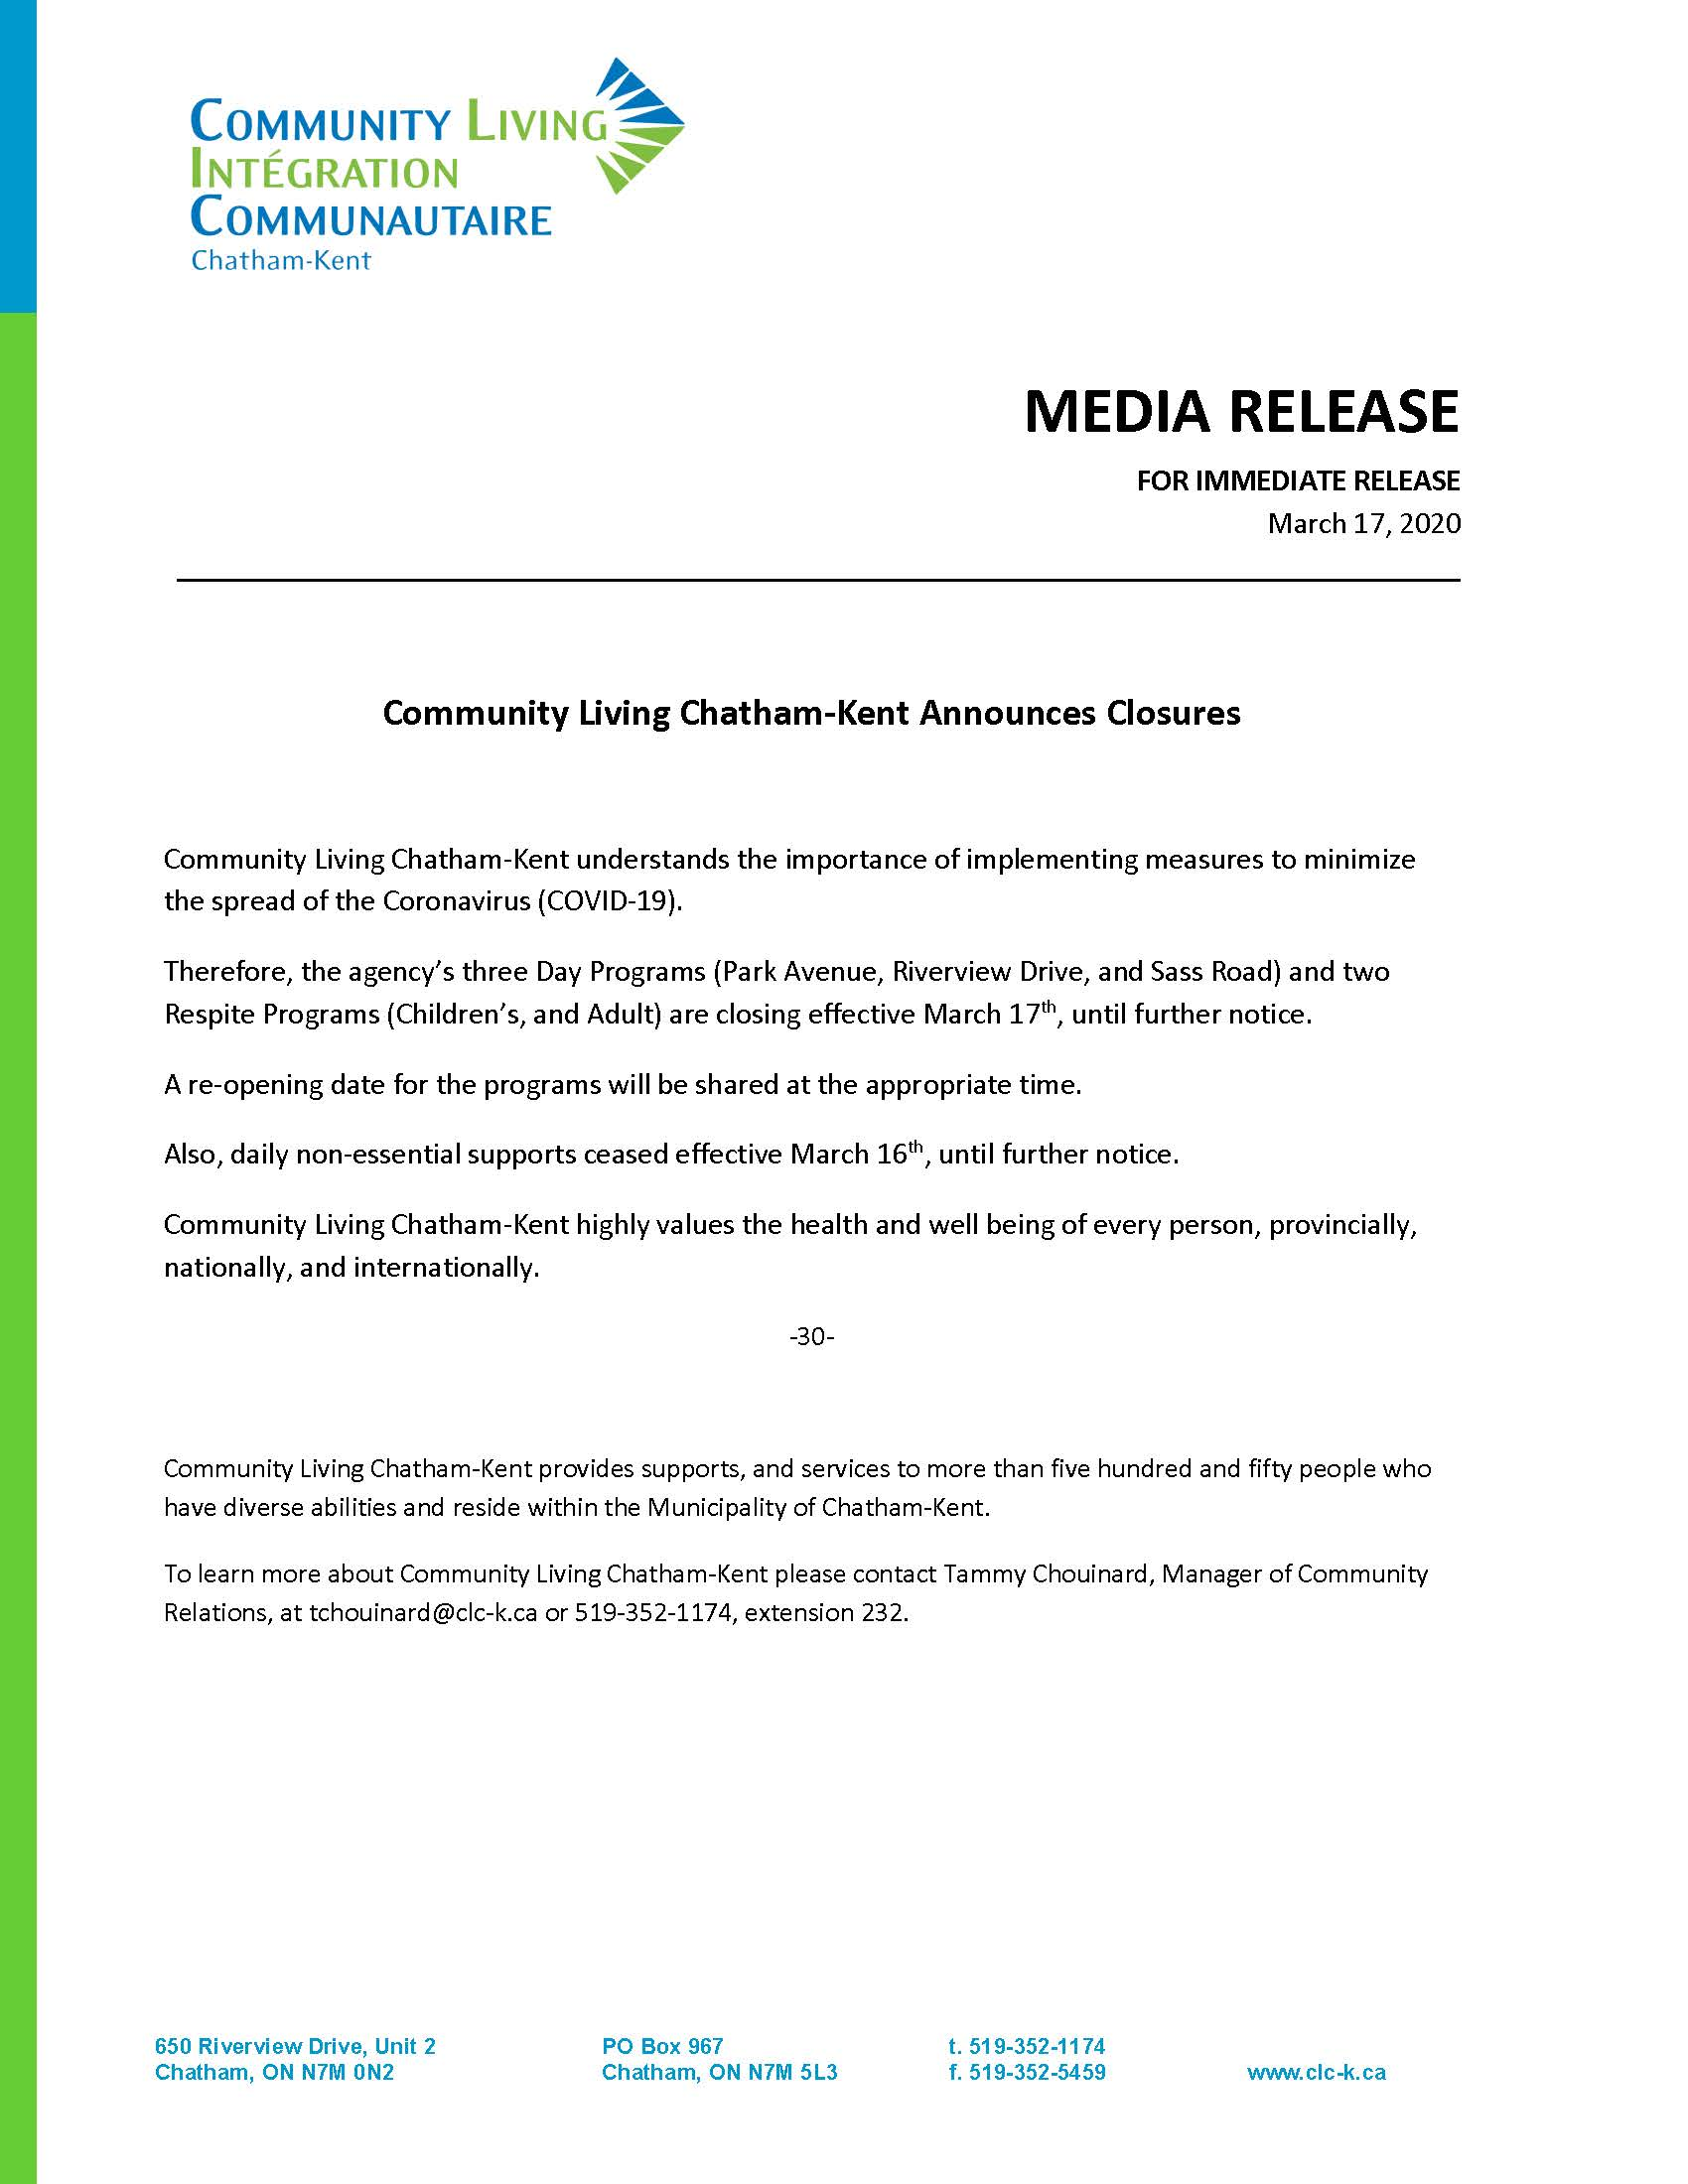 MEDIA RELEASE FOR IMMEDIATE RELEASE March 17, 2020. Community Living Chatham-Kent understands the importance of implementing measures to minimize the spread of the Coronavirus (COVID-19). Therefore, the agency's three Day Programs (Park Avenue, Riverview Drive, and Sass Road) and two Respite Programs (Children's, and Adult) are closing effective March 17th, until further notice. A re-opening date for the programs will be shared at the appropriate time. Also, daily non-essential supports ceased effective March 16th, until further notice. Community Living Chatham-Kent highly values the health and well being of every person, provincially, nationally, and internationally. -30- Community Living Chatham-Kent provides supports, and services to more than five hundred and fifty people who have diverse abilities and reside within the Municipality of Chatham-Kent. To learn more about Community Living Chatham-Kent please contact Tammy Chouinard, Manager of Community Relations, at tchouinard@clc-k.ca or 519-352-1174, extension 232.